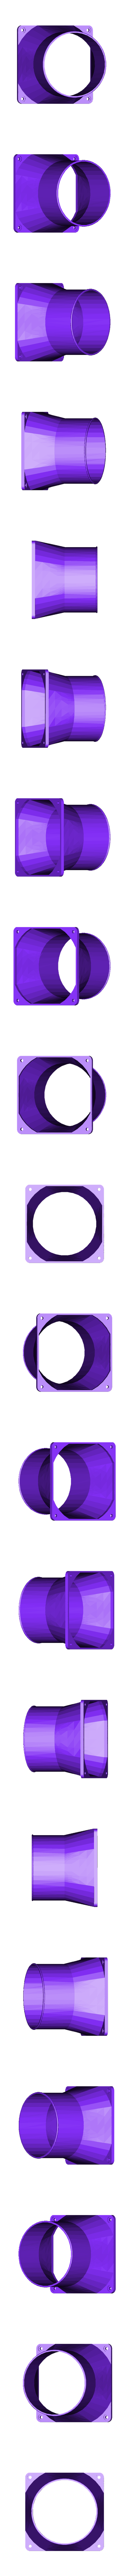 120mm_fan_100mm_duct_adaptor_2.stl Download free STL file 120mm Fan to 100mm A/C Duct Adaptor • 3D printable object, Odrenria